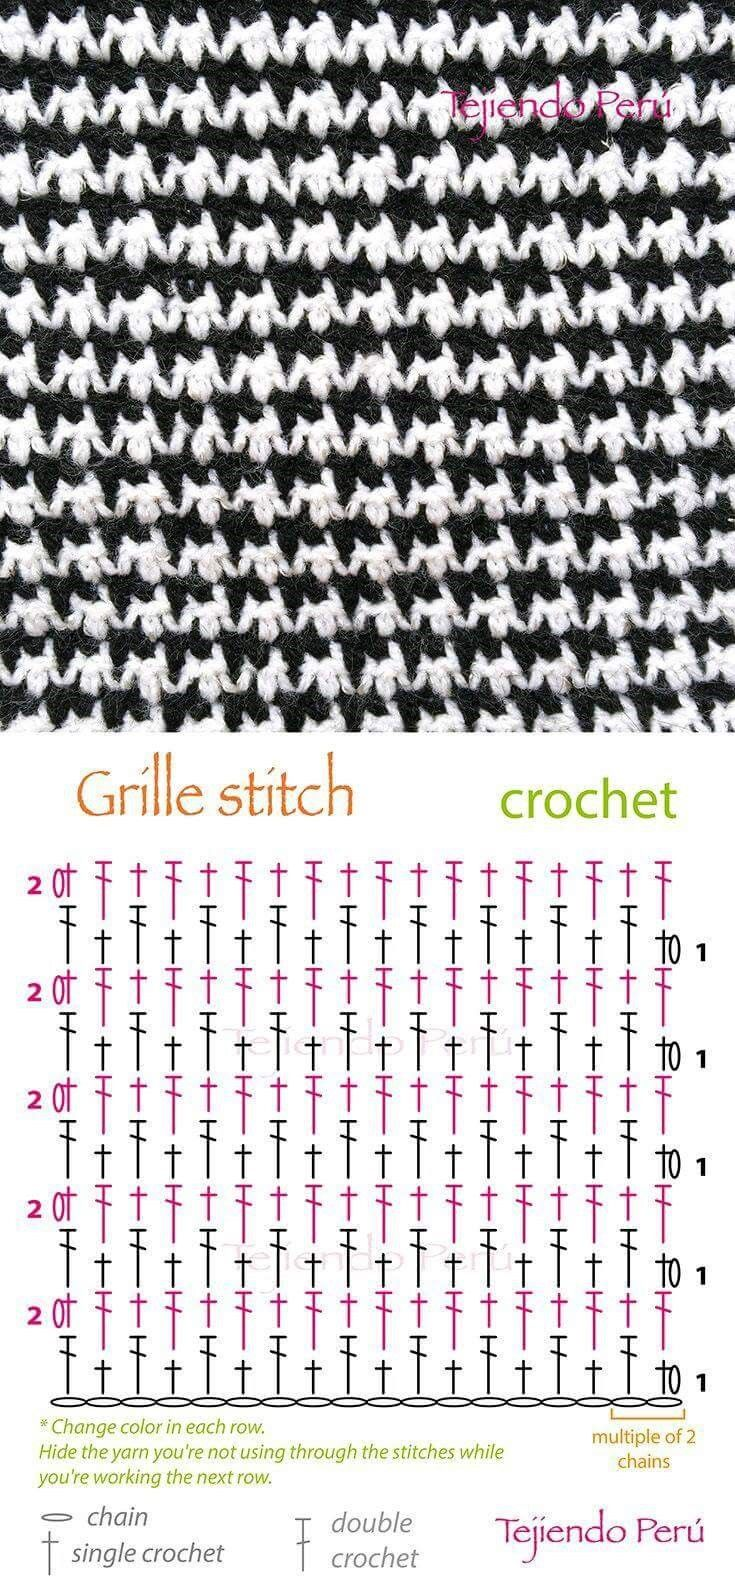 203 best 스티치 images on Pinterest | Crochet stitches, Knits and ...